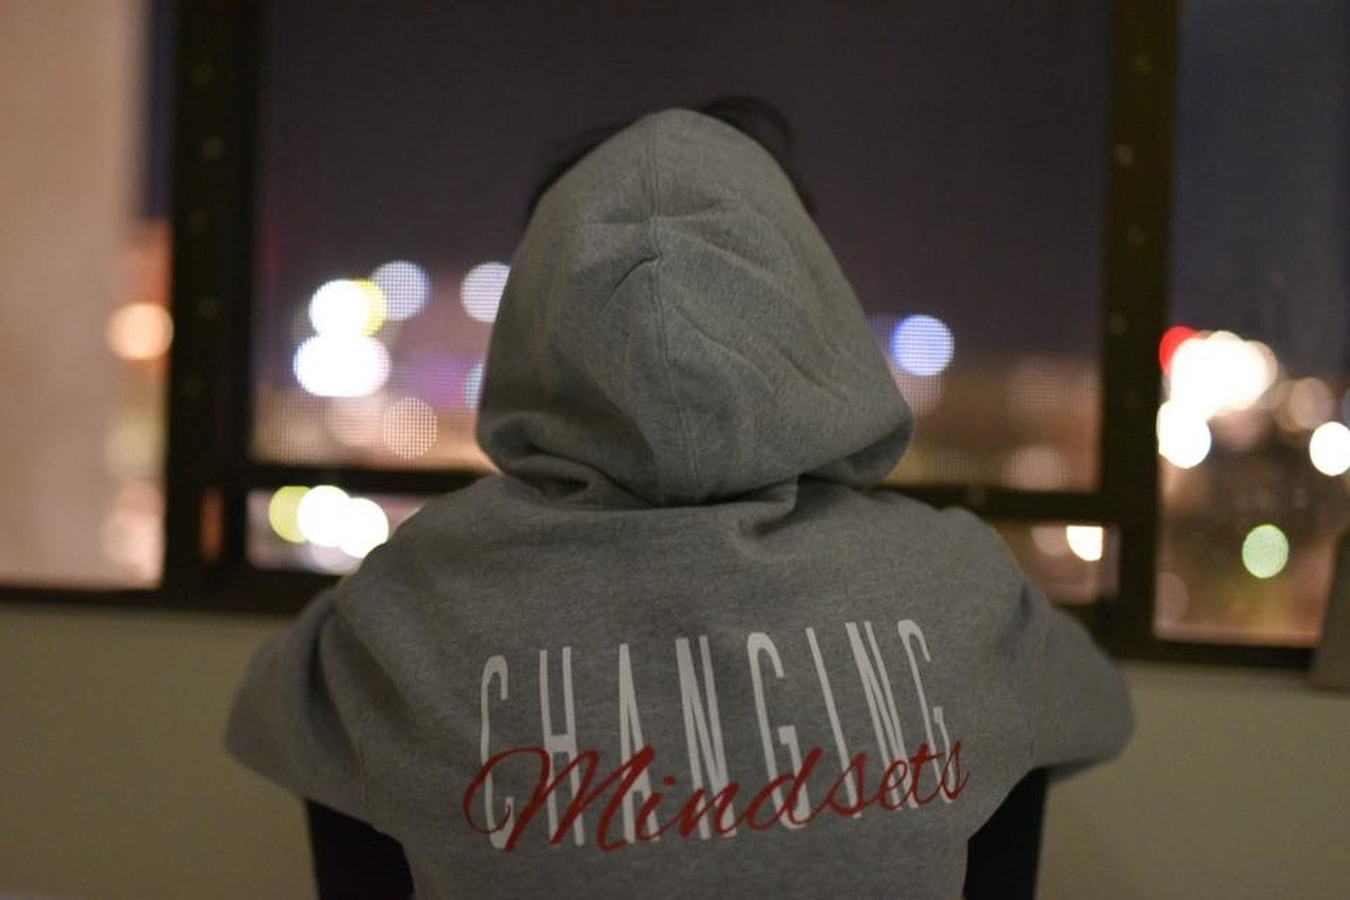 Girl wearing changing mindsets hoodie